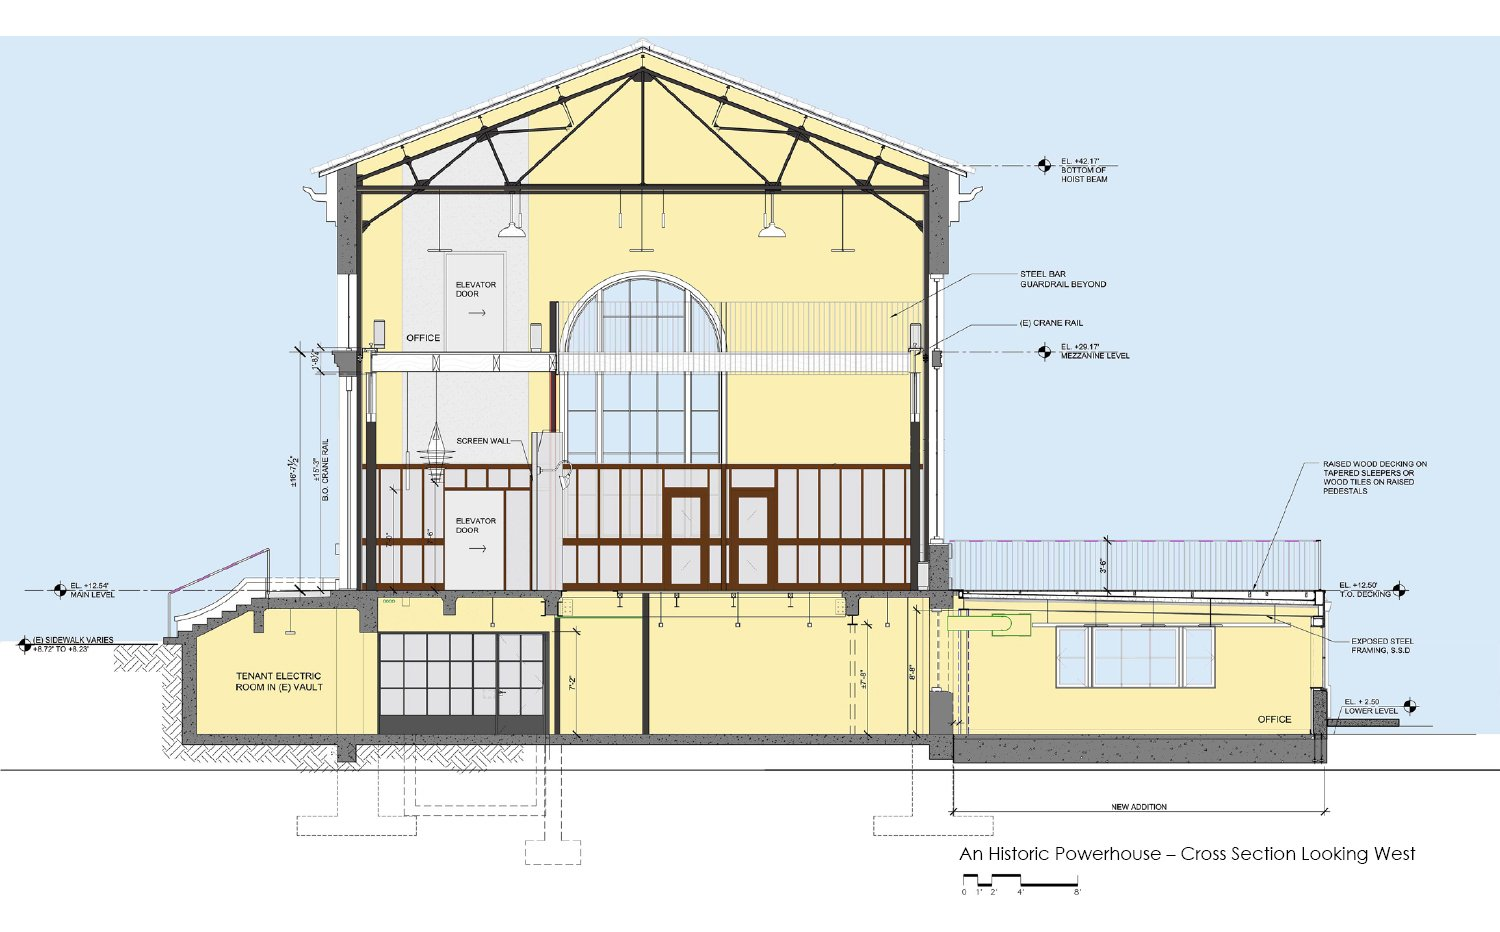 Cross-section drawing looking west. In the lower level, daylight access was managed programmatically. The new addition, with views to the rest of the historic district and a waterfront park, is used for wo Marcy Wong Donn Logan Architects}